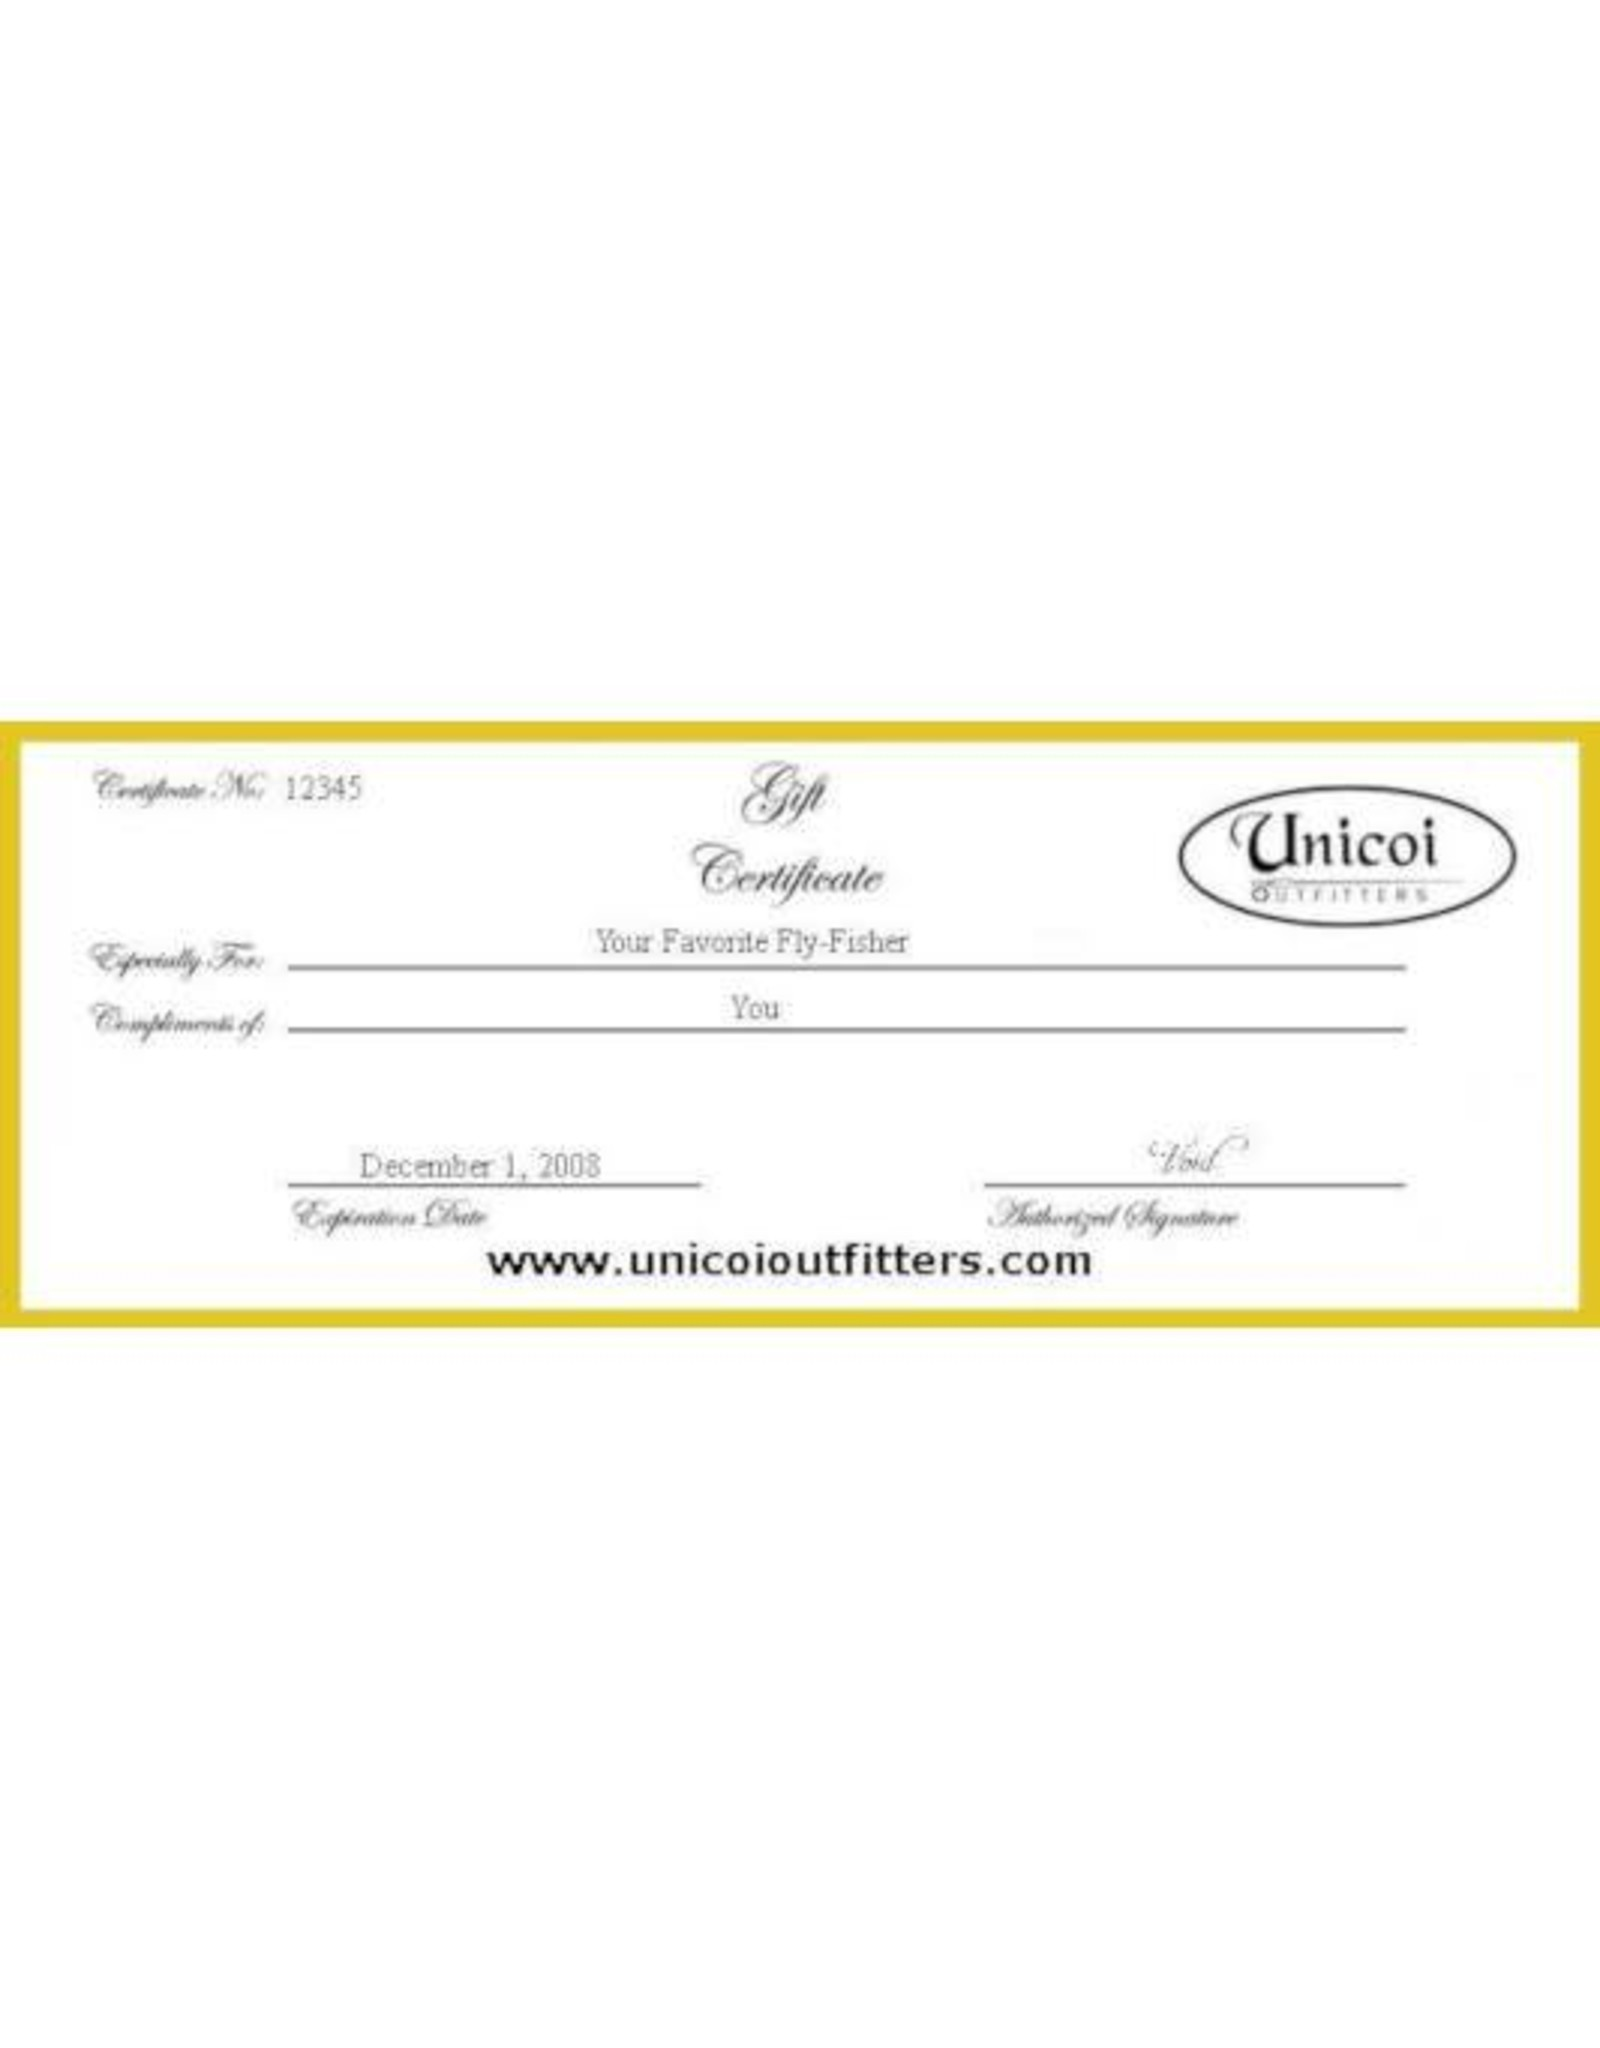 Unicoi Outfitters Gift Certificate - Gilligan Special